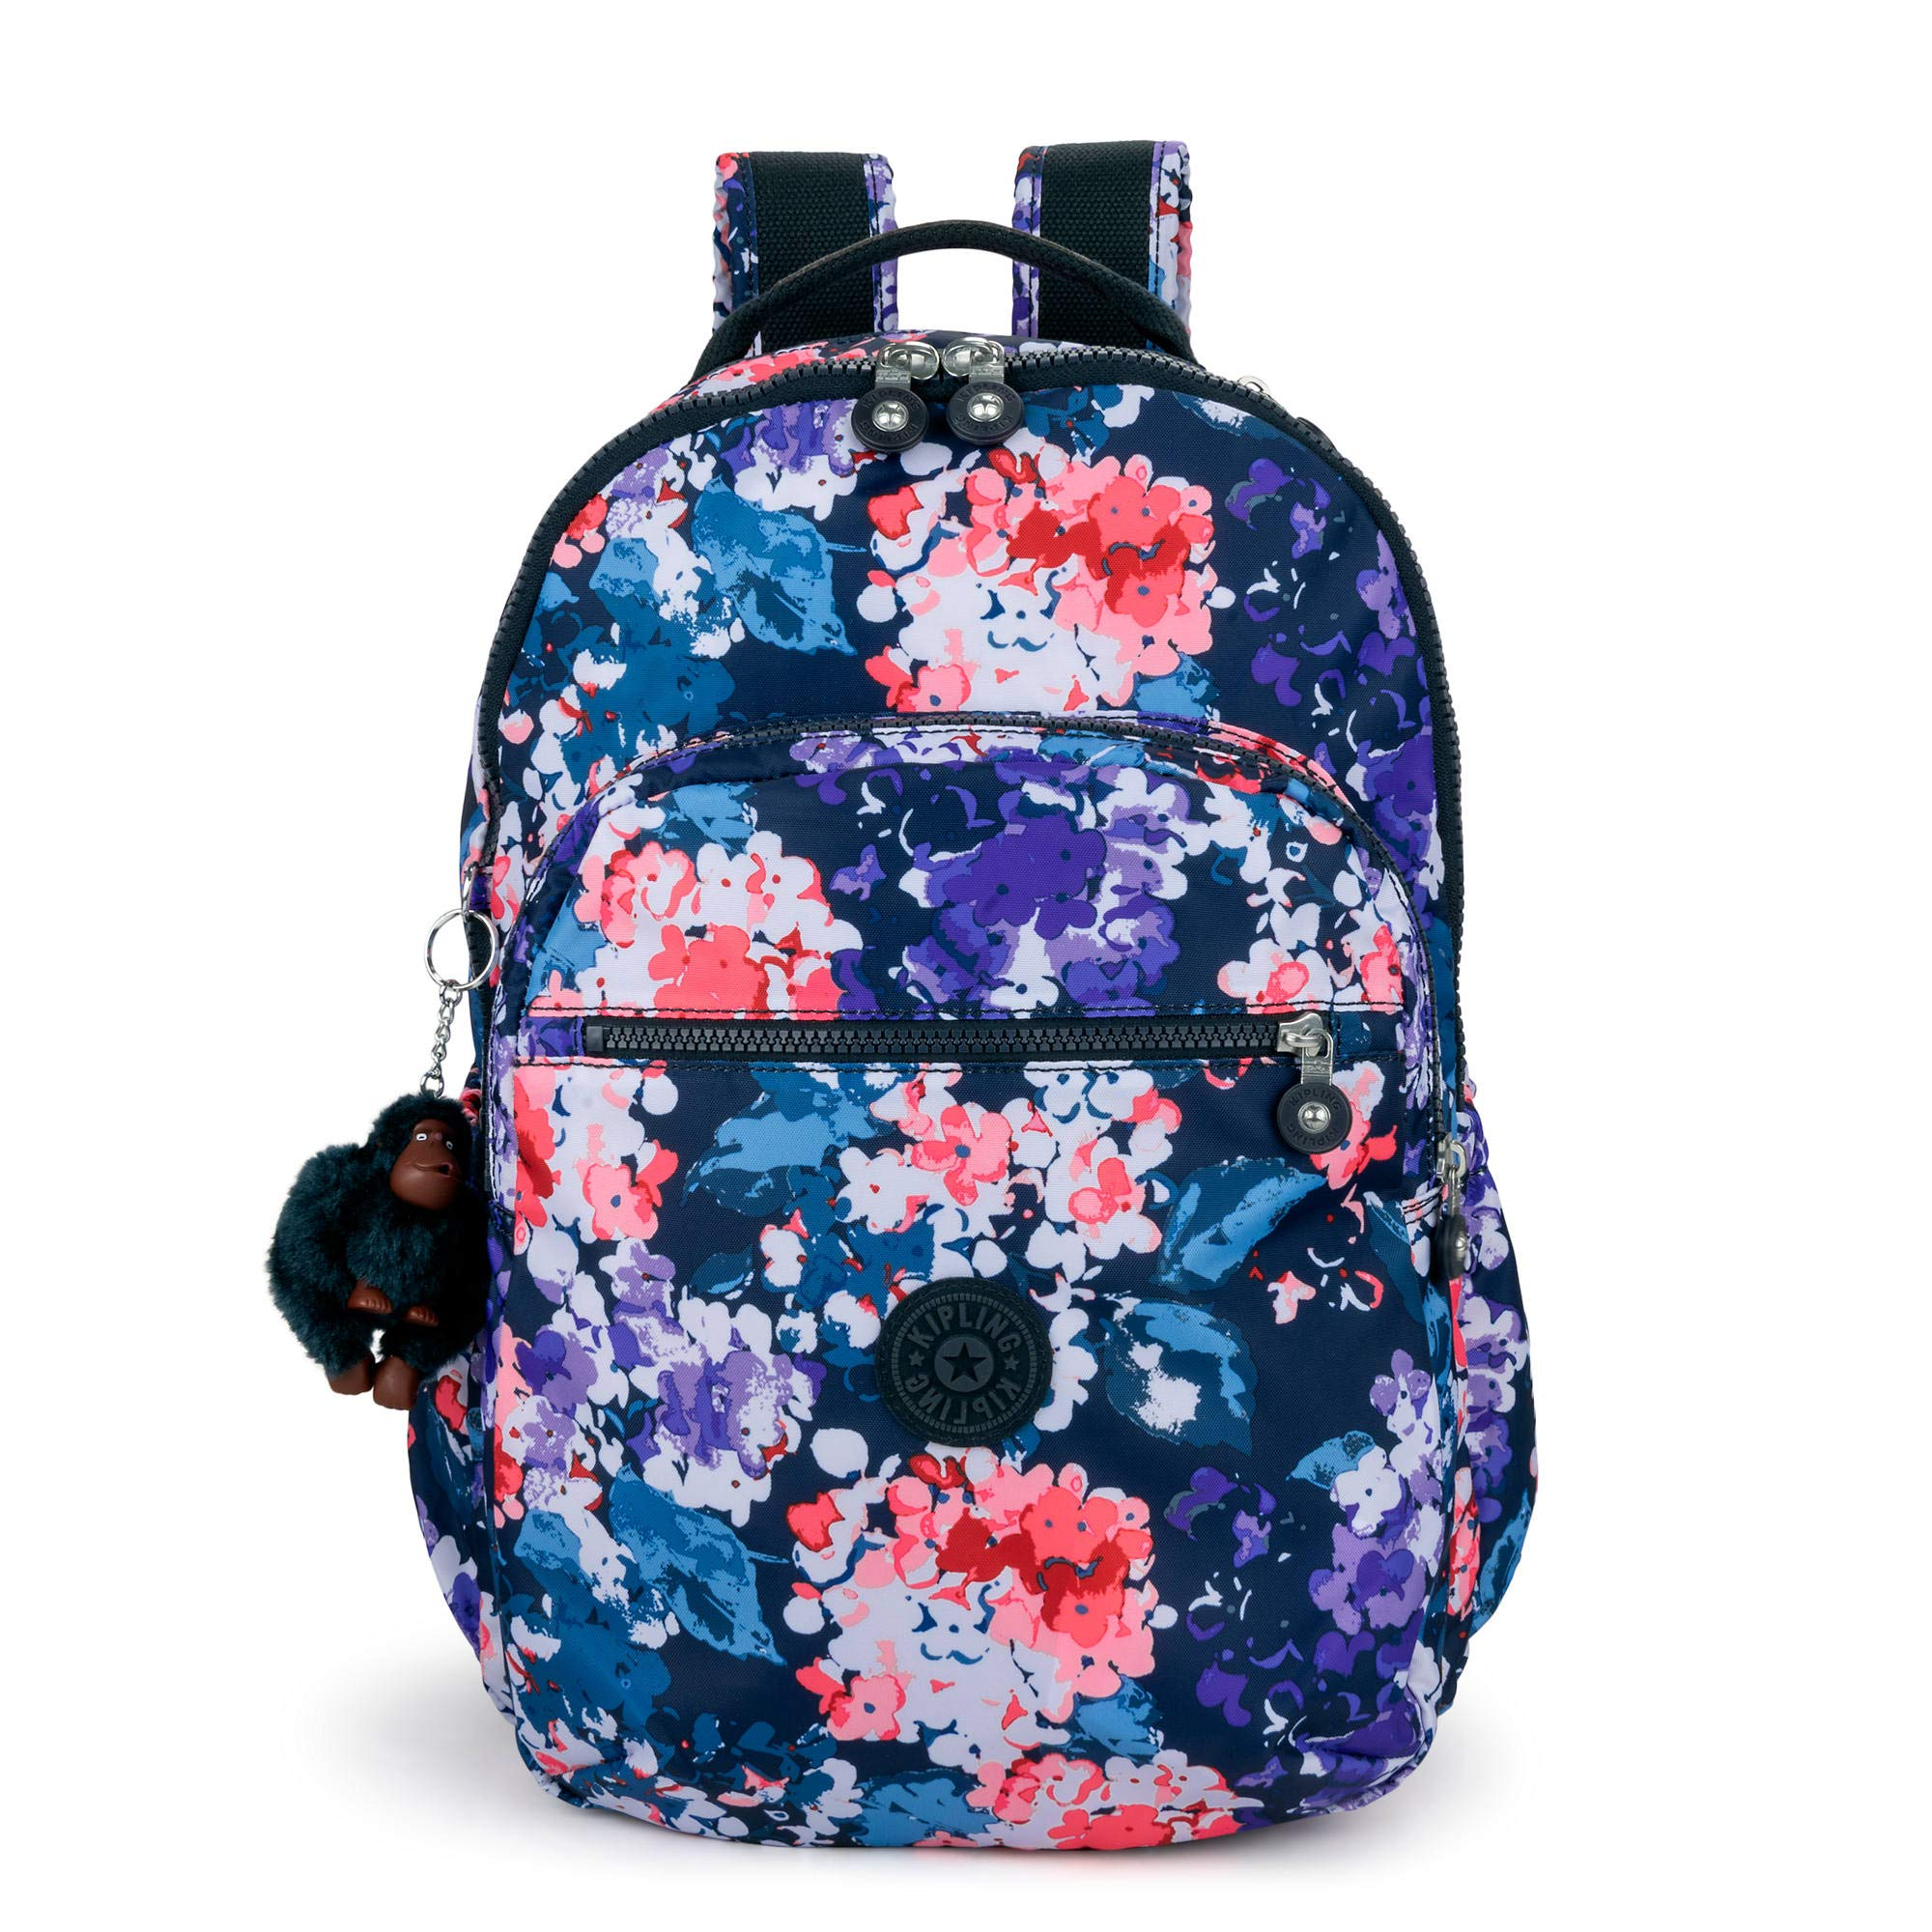 Kipling Seoul Go Large Printed Laptop 15'' Backpack One Size Blushing Blooms by Kipling (Image #1)